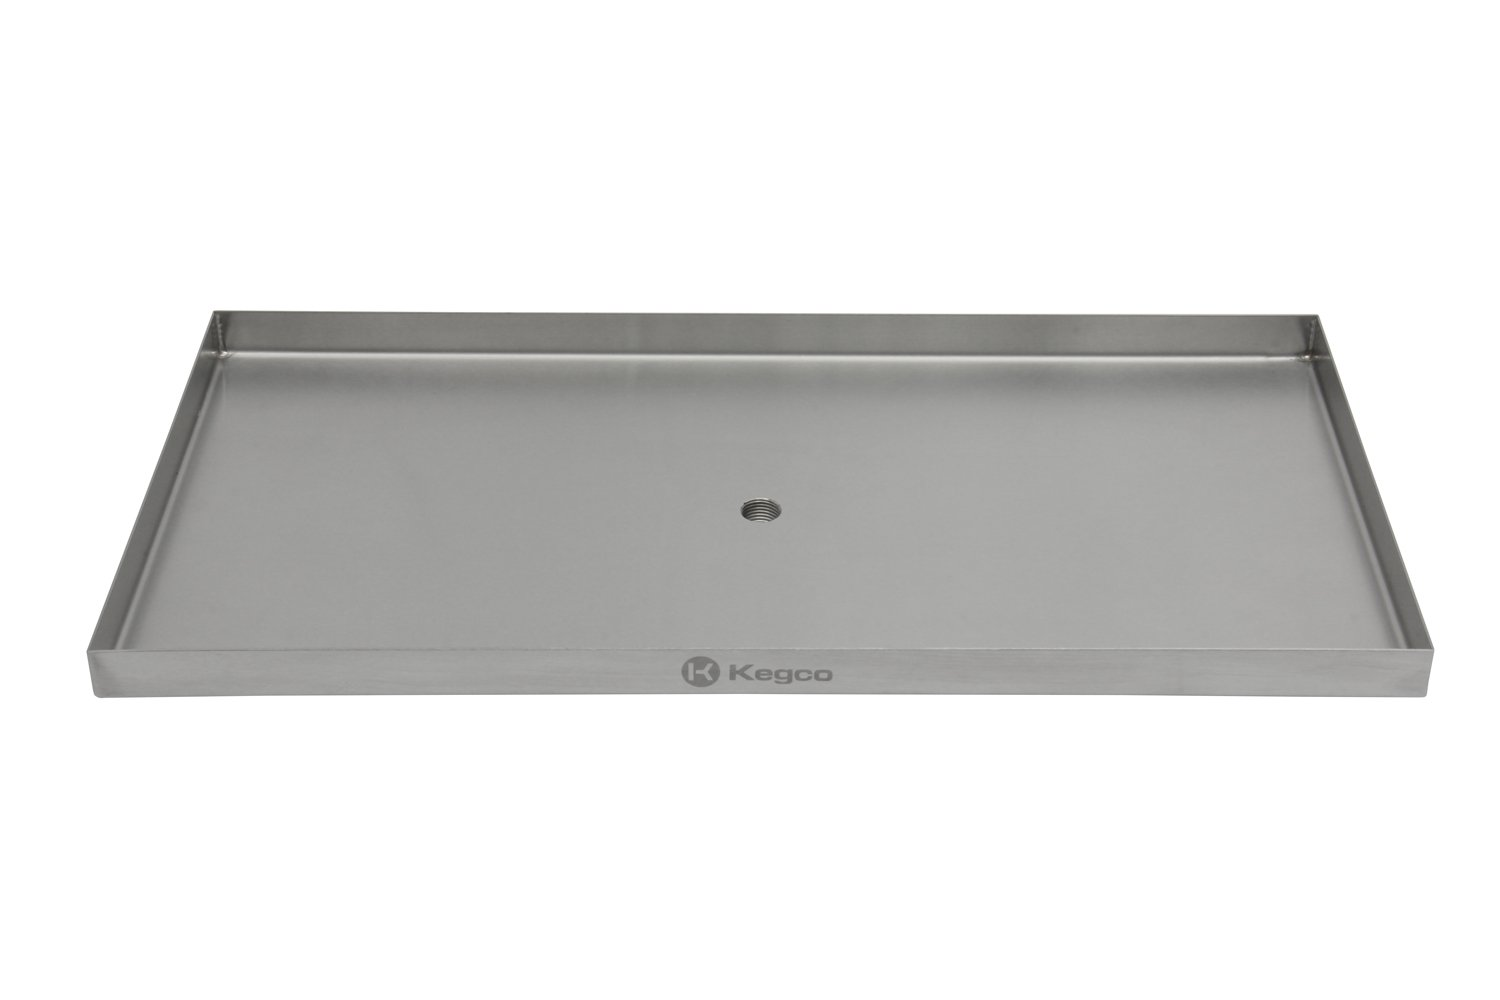 Kegco SESM-189D 18'' x 9'' Surface Mount Drip Tray with Drain by Kegco (Image #4)